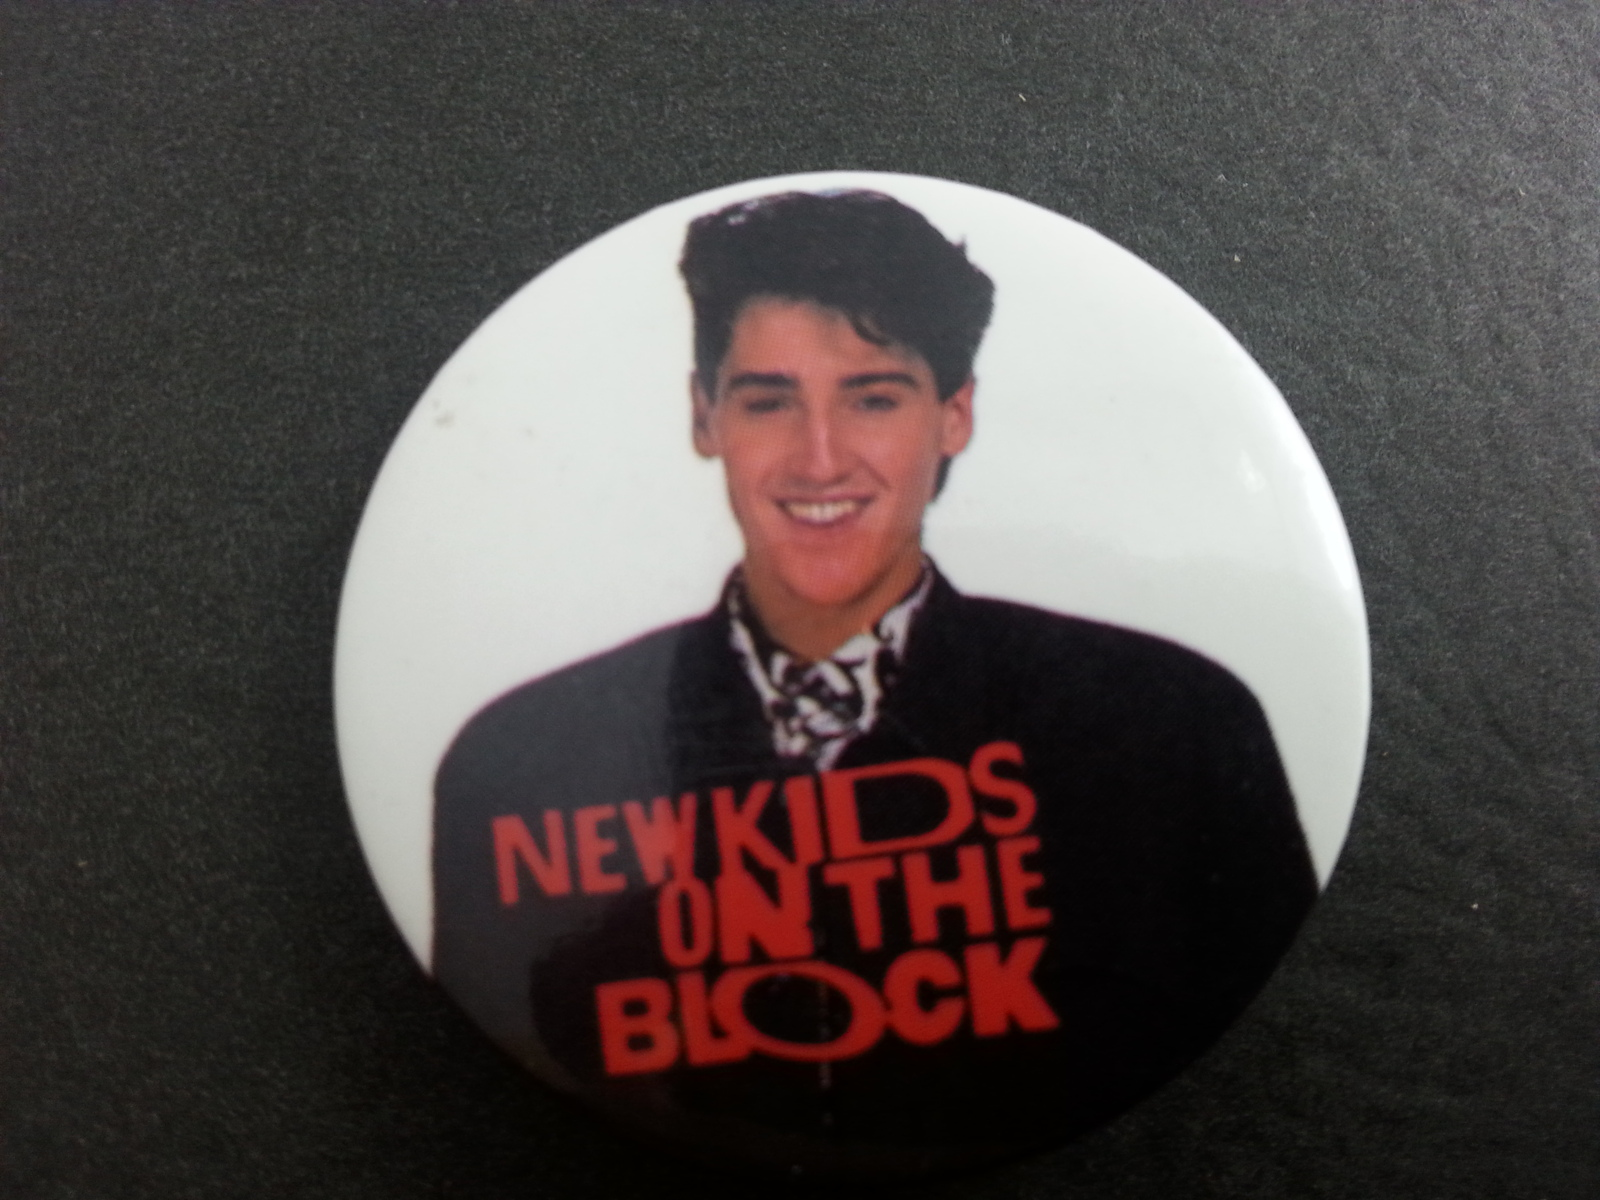 Retro New Kids on the Block Button -  Jonathan is Casual Preppy Suit !!